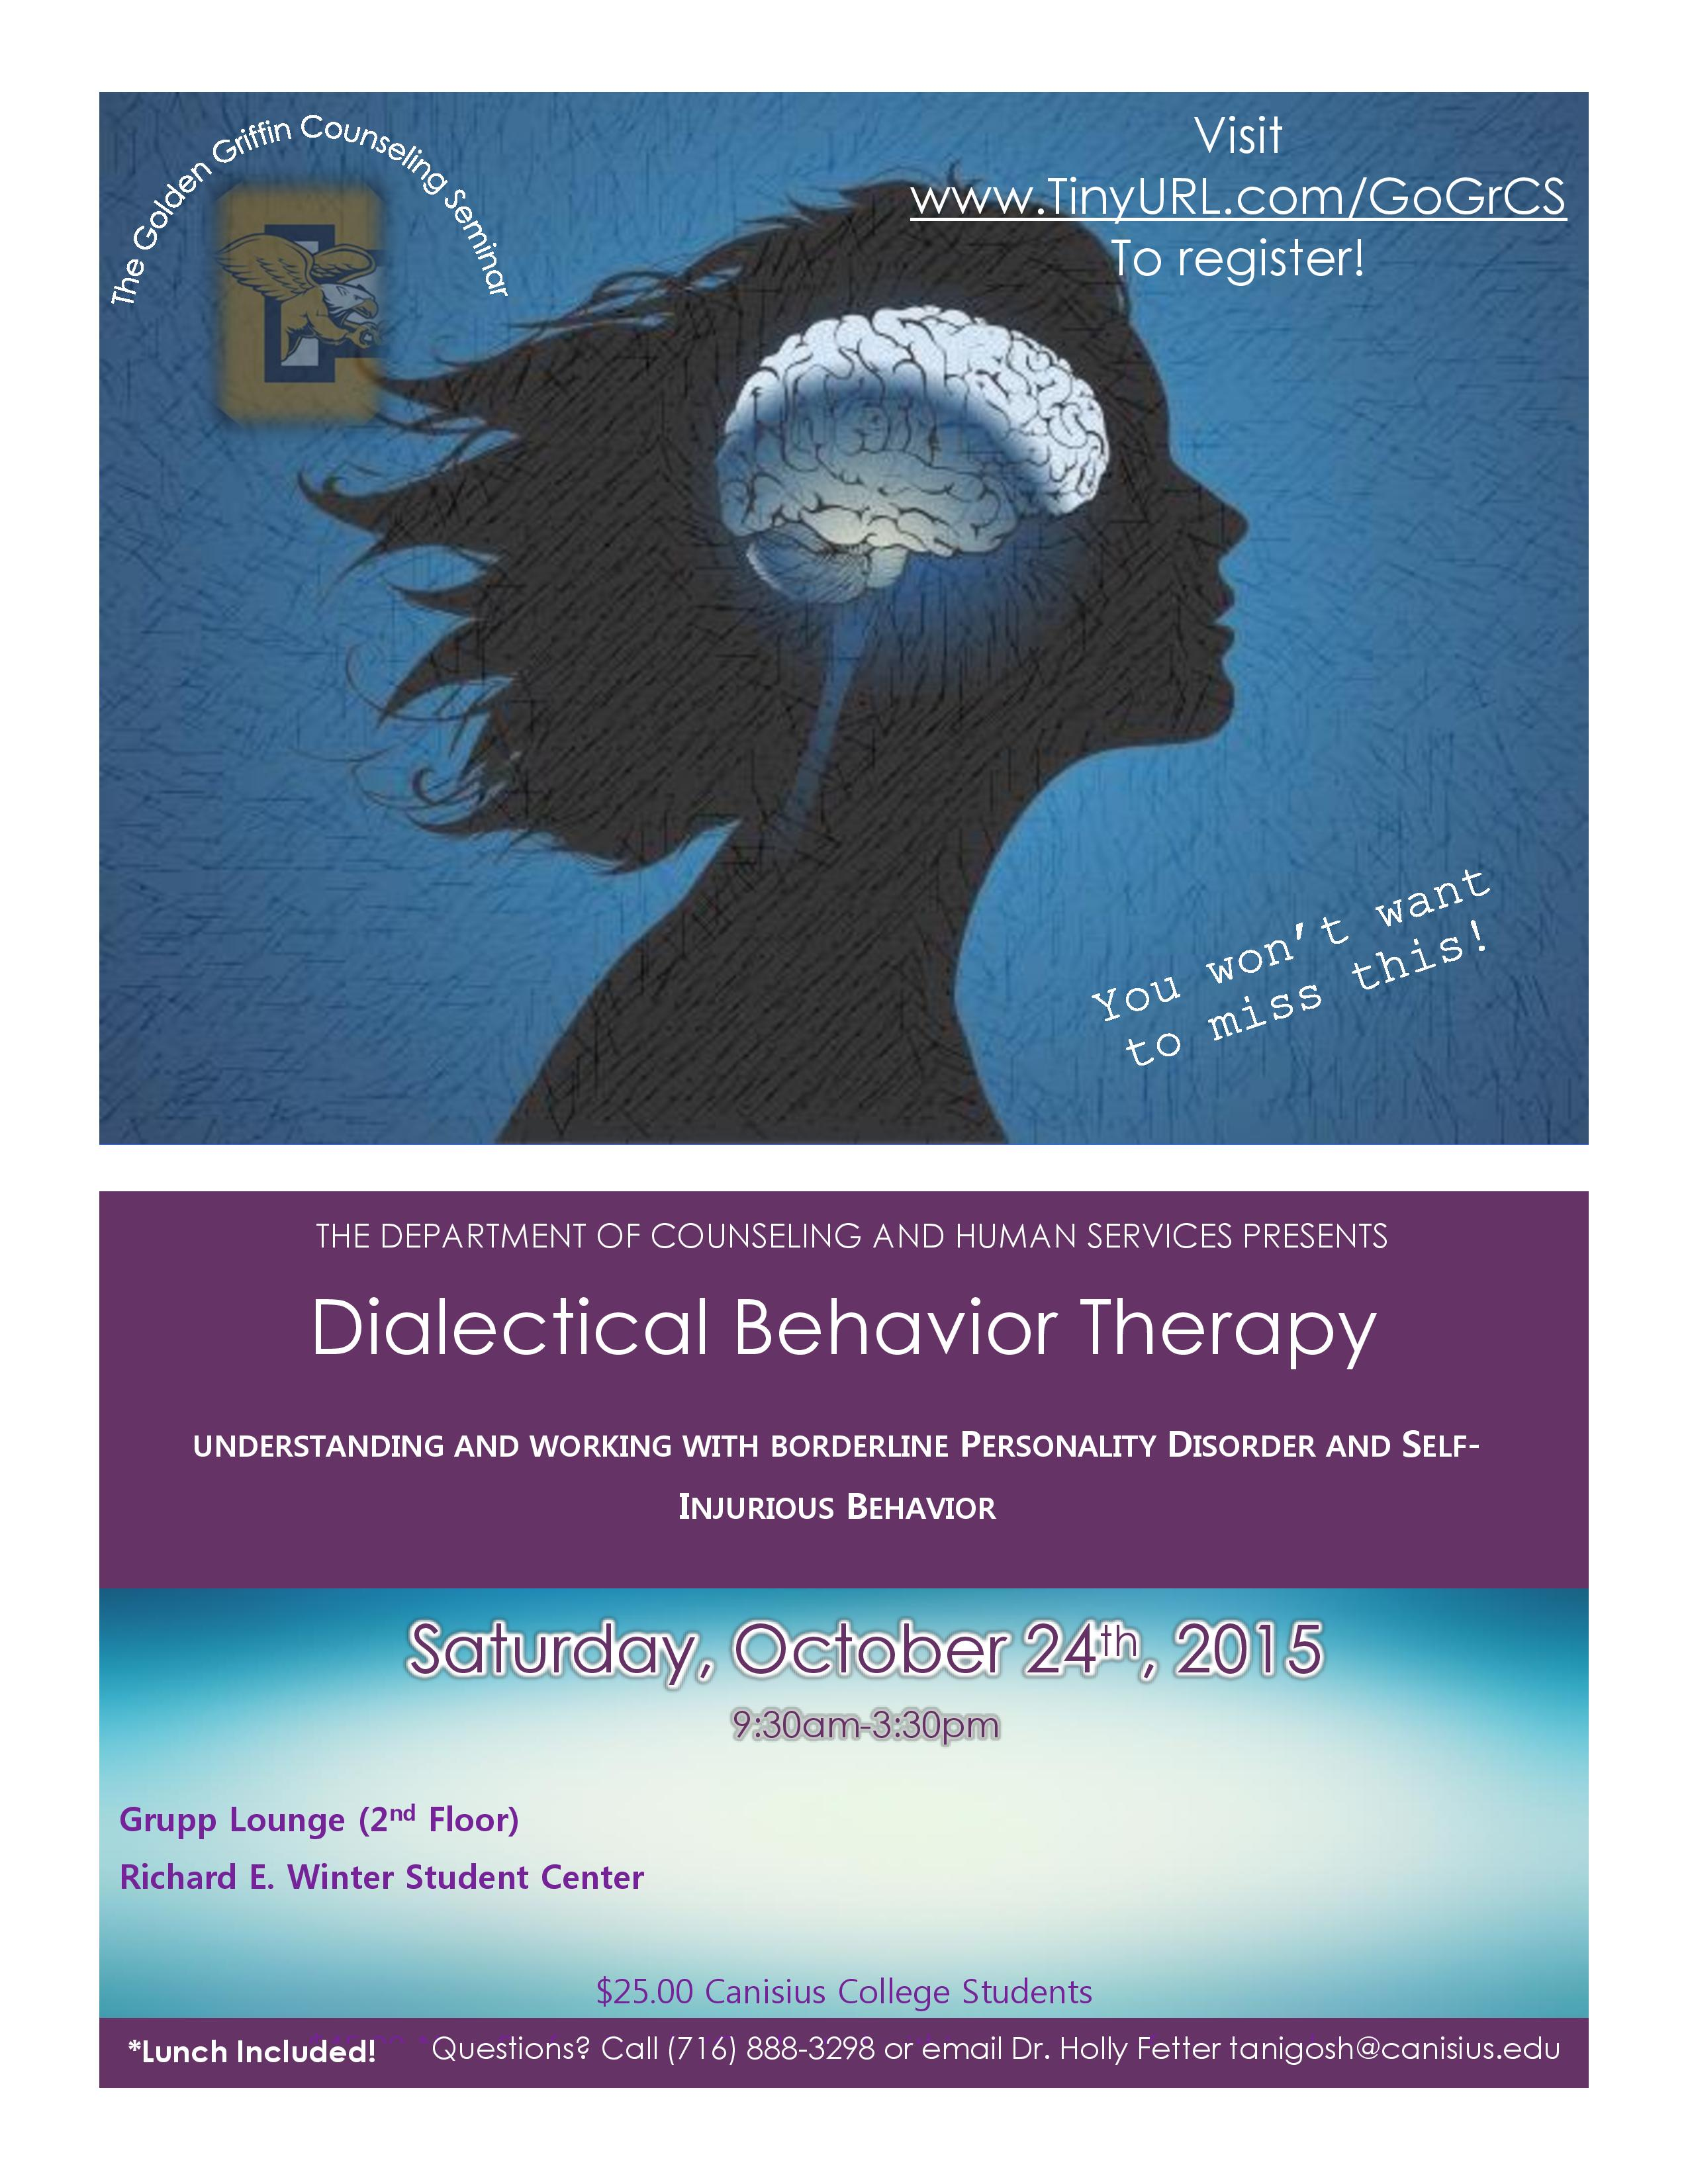 dialectical behavior therapy What is dialectical behavior therapy what is it used for what is it based on what are the four modules how does it help those with borderline personality disorder.